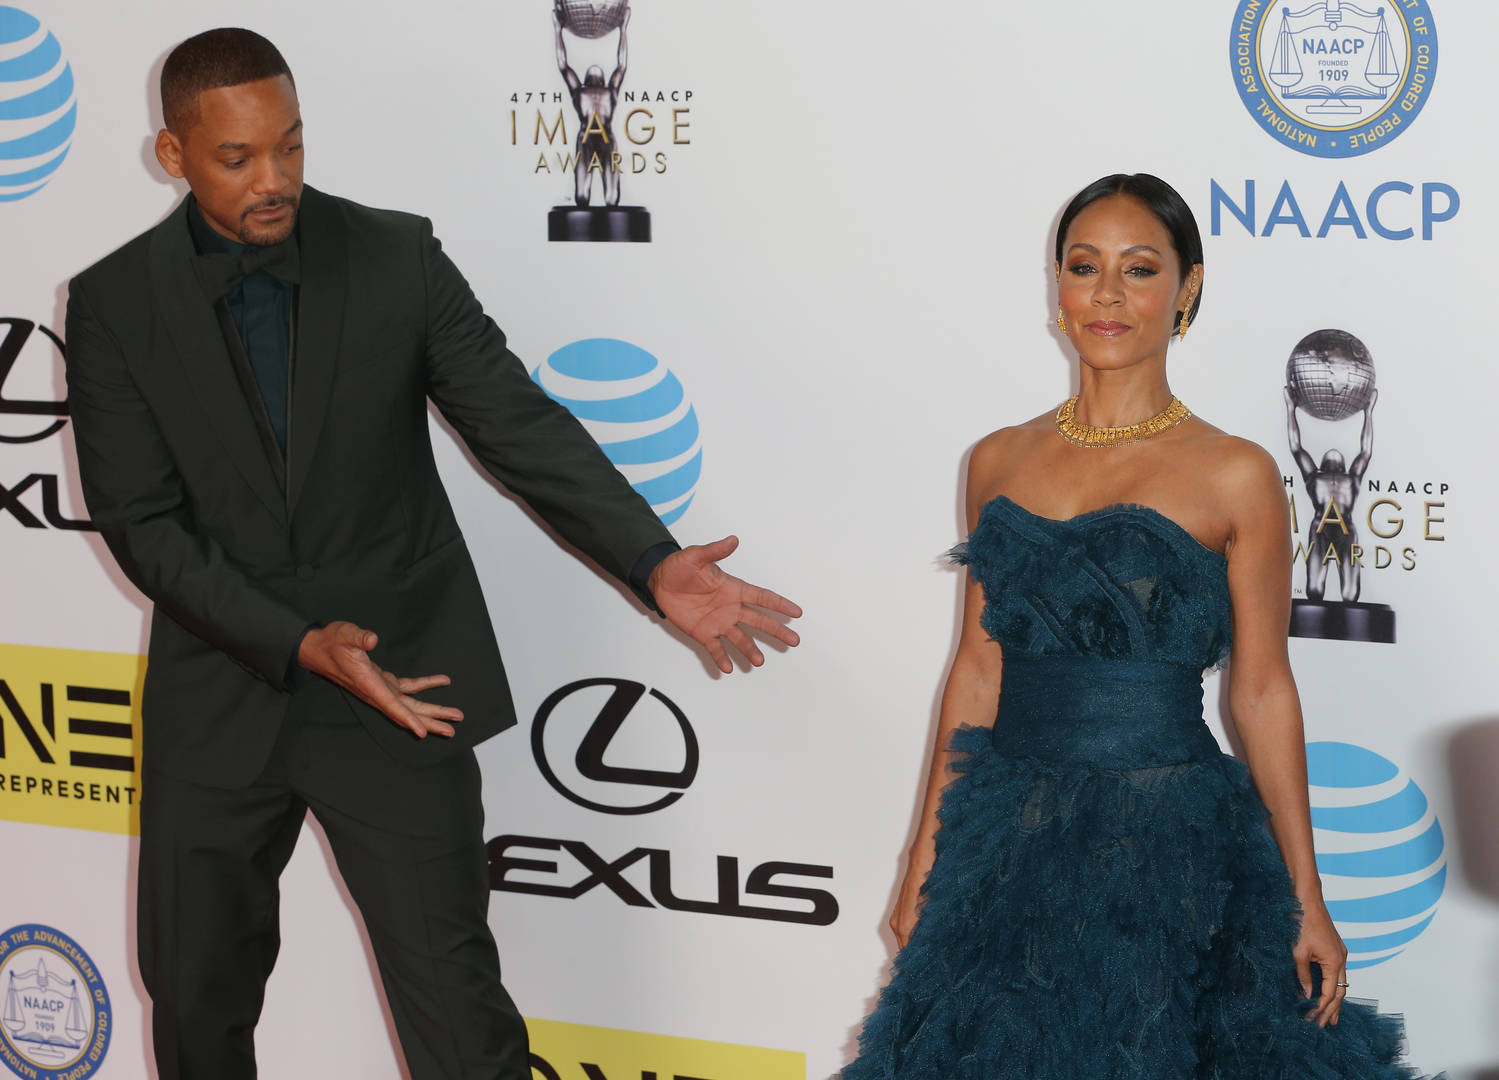 Will Smith Almost Beat Up Jada Pinkett's Co-Star Over Kissing Scene